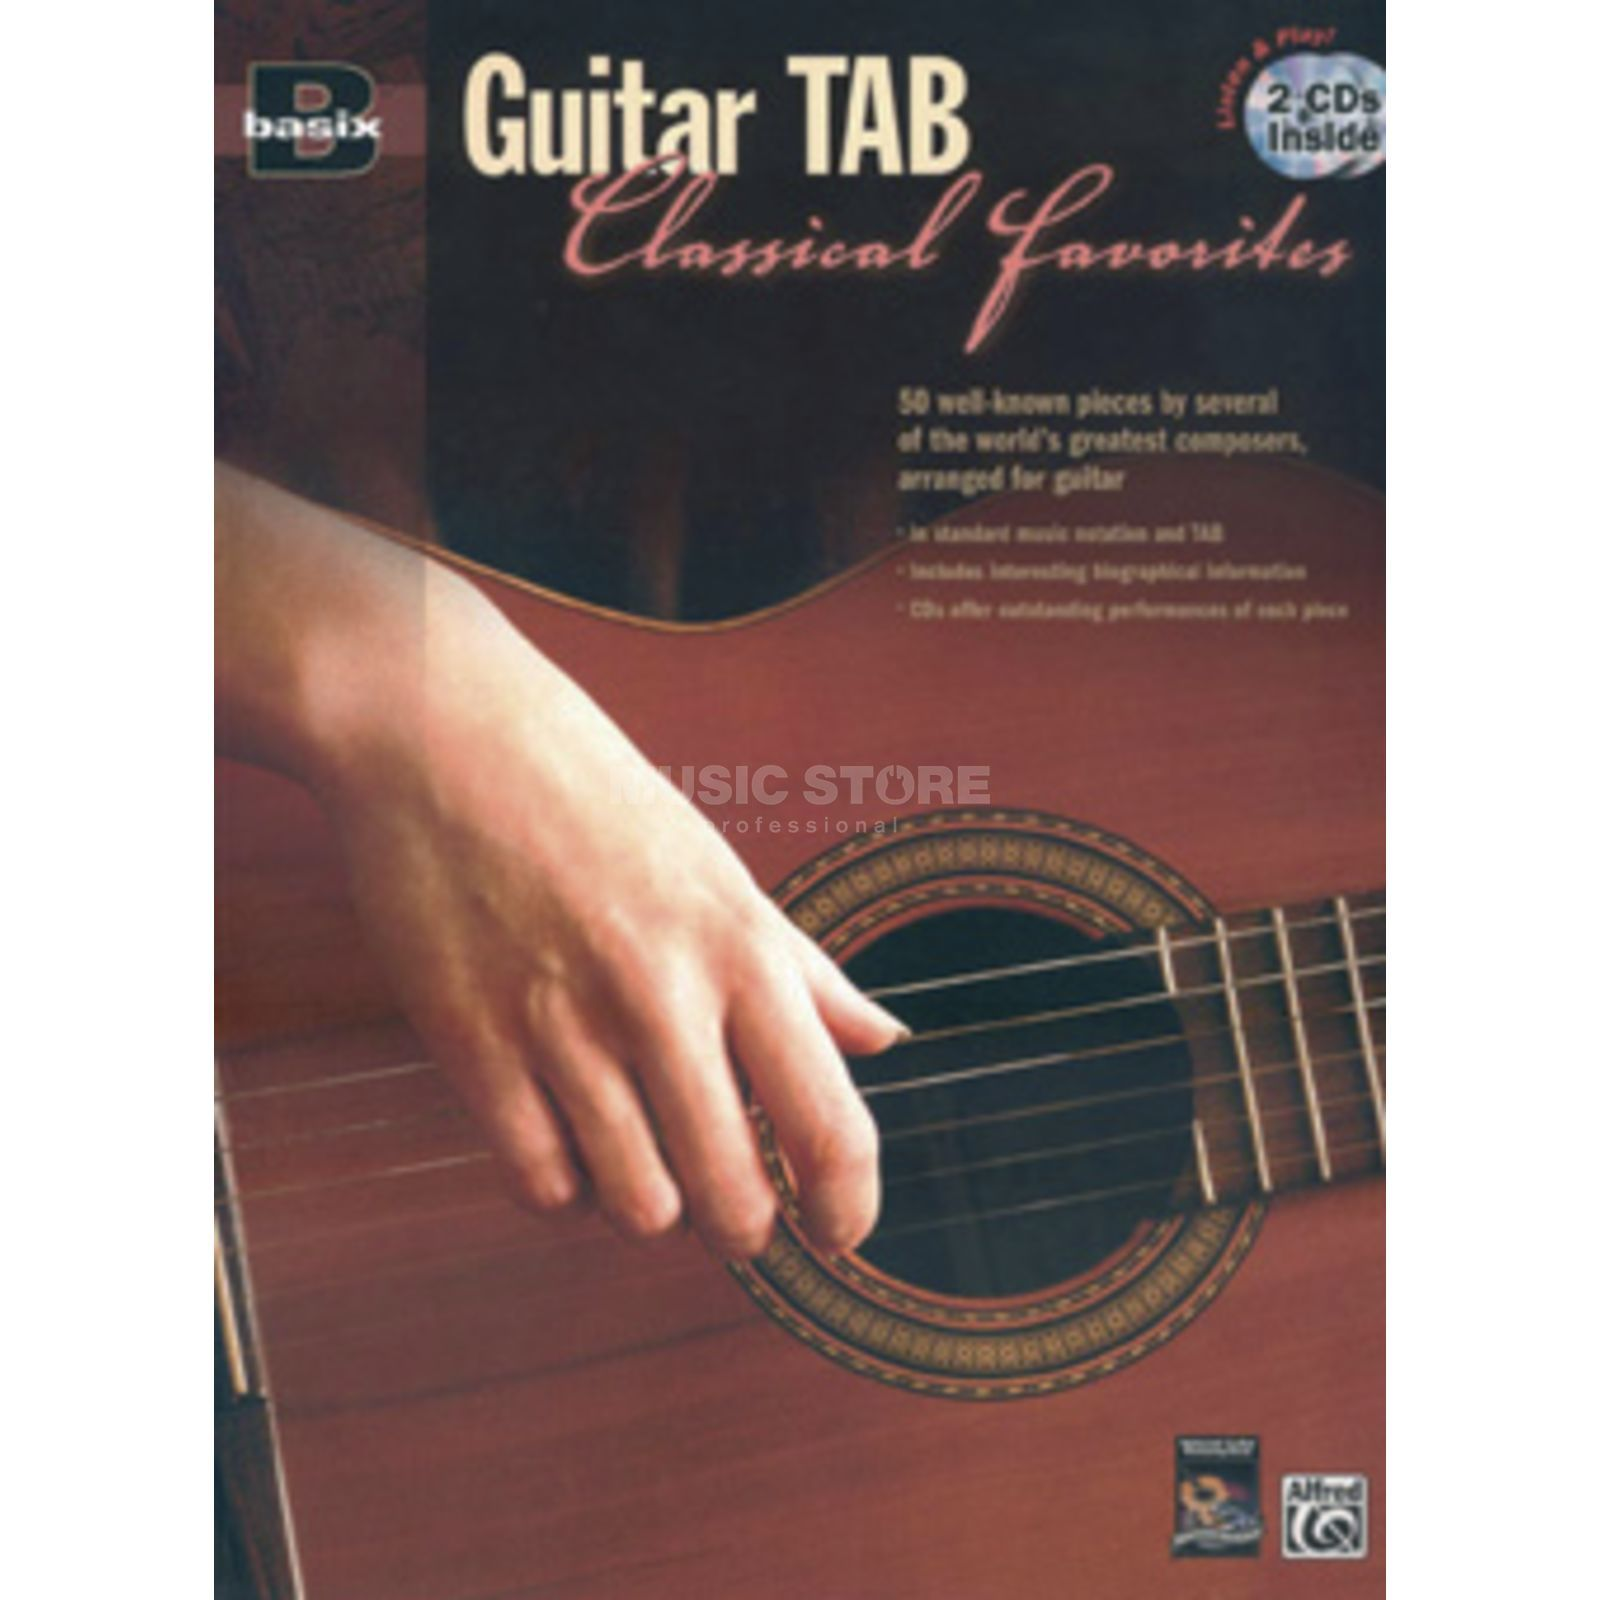 Alfred Music Basix Guitar Tab Classical Favorites Produktbild